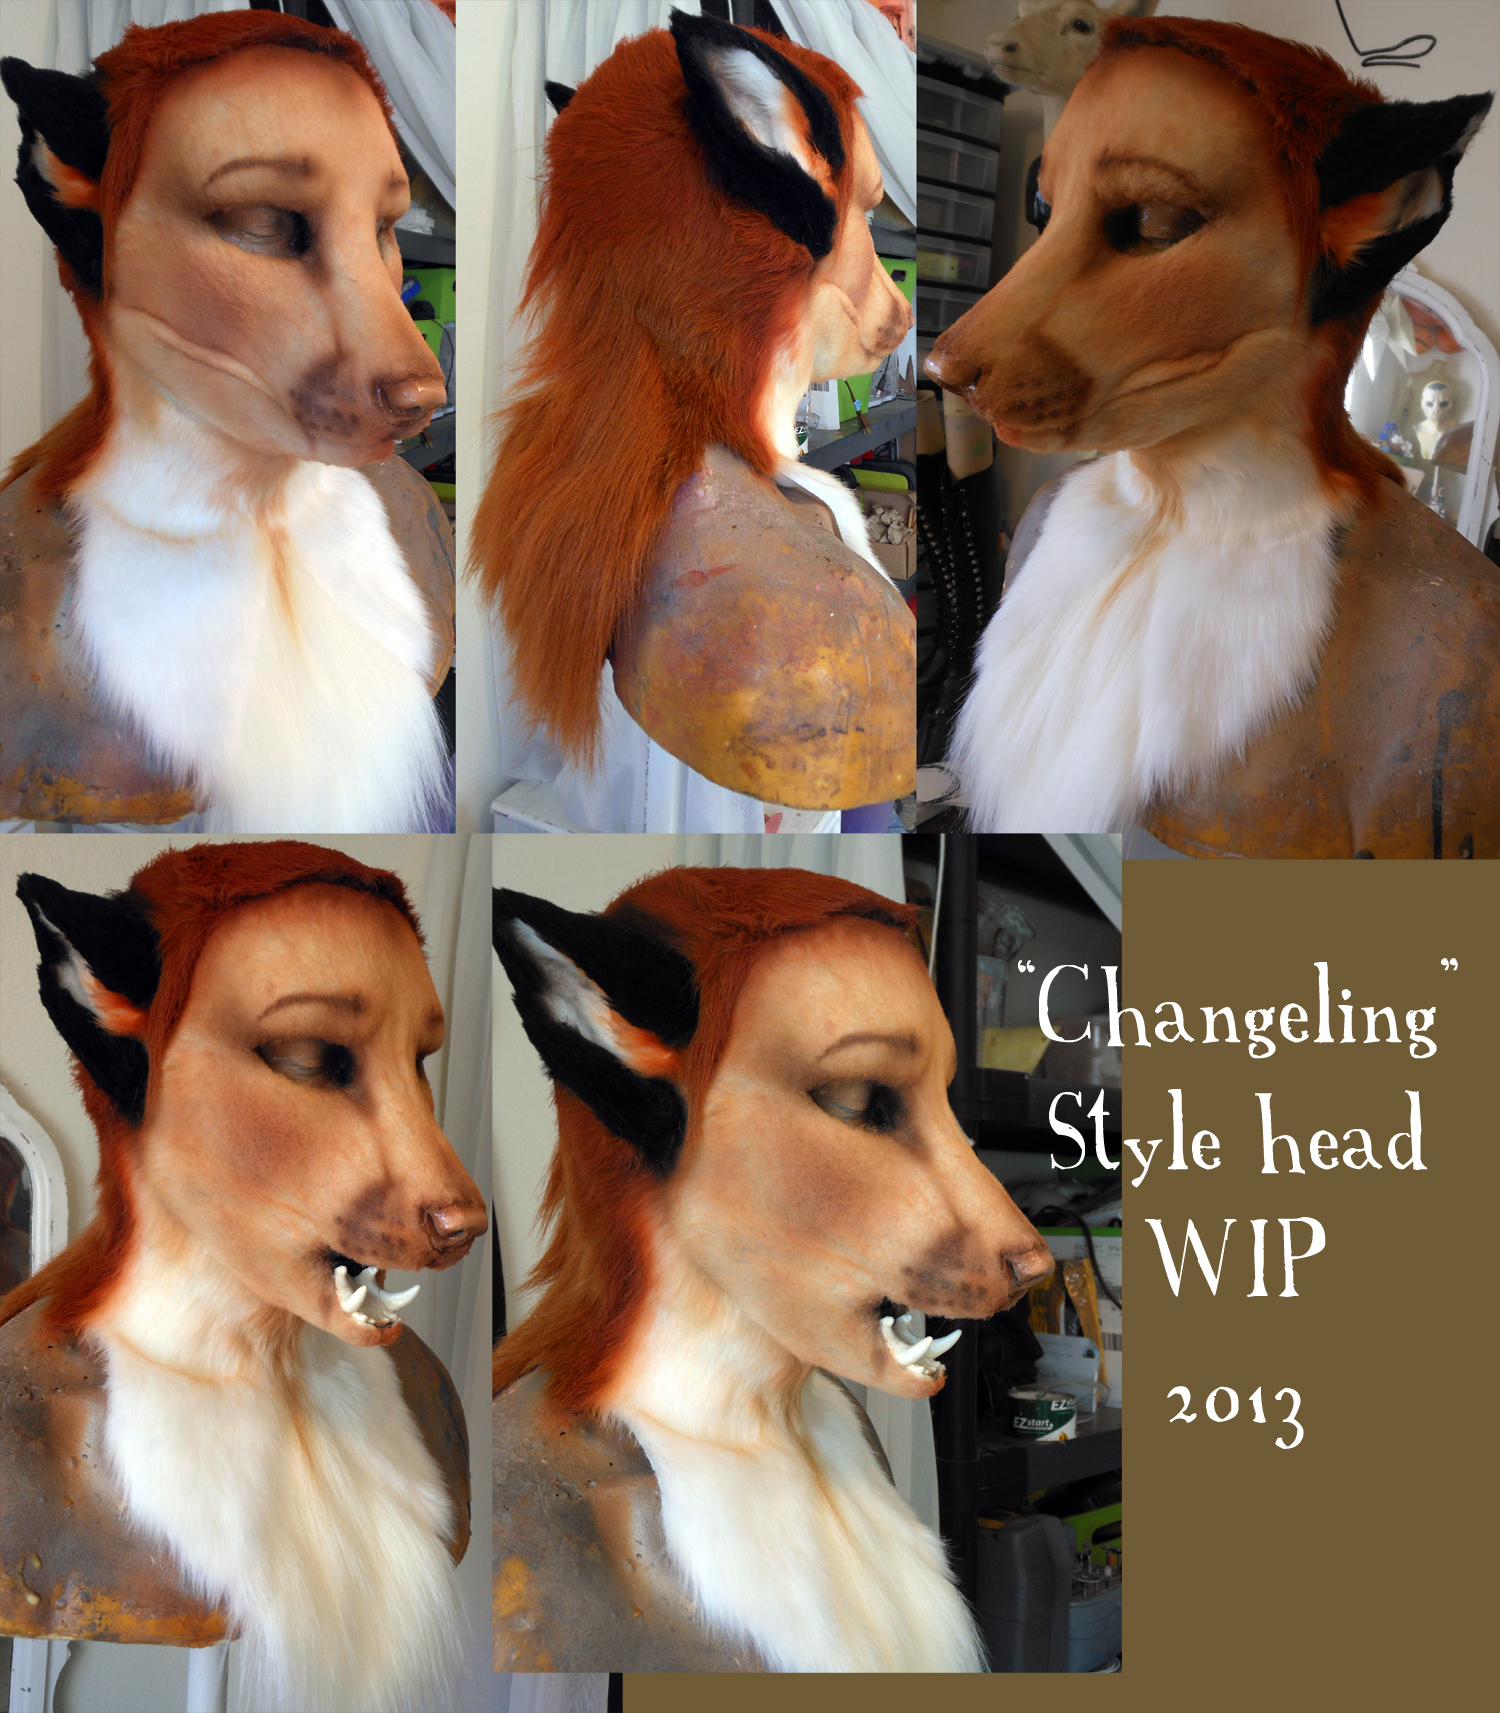 New Head Type: CHANGELING (WIP by Magpieb0nes